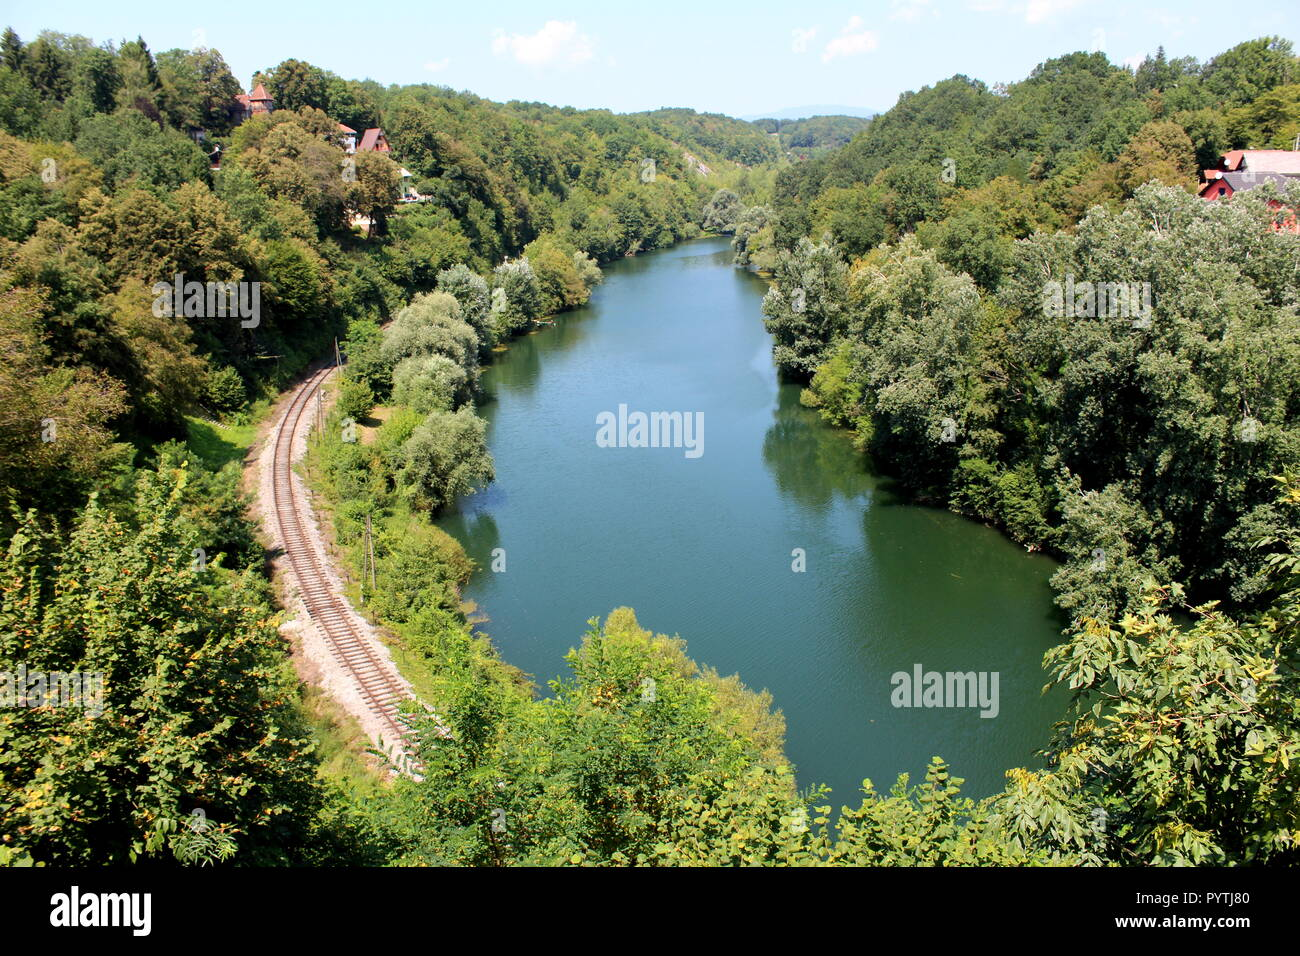 Clear river surrounded with family houses between tall trees, overgrown vegetation and railway tracks with wooden electrical utility poles - Stock Image